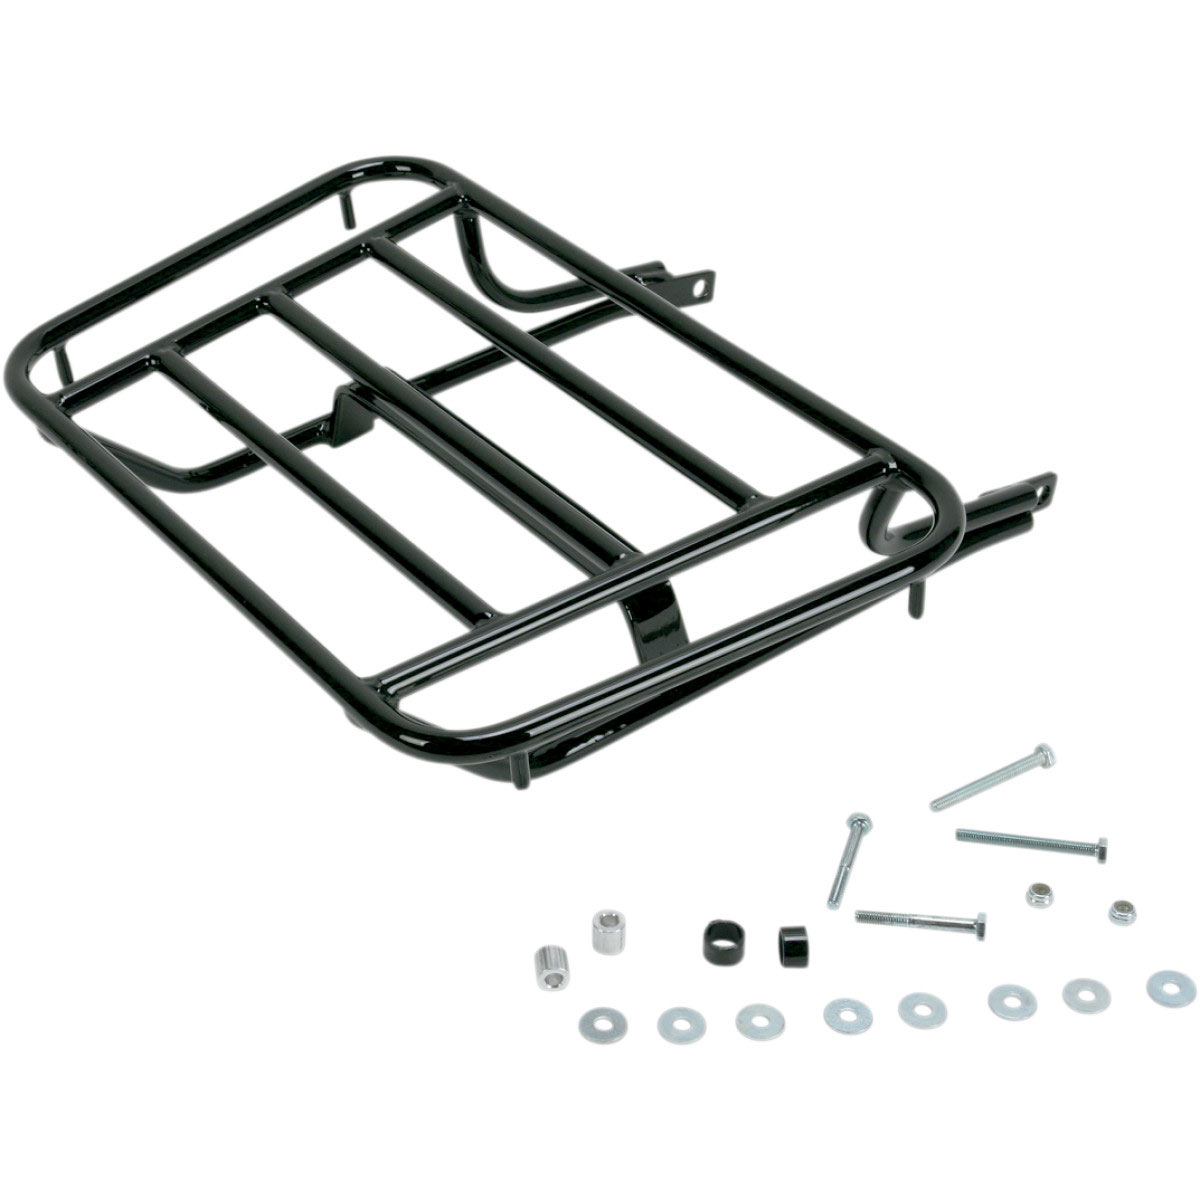 Moose Expedition Rear Rack for KLX250SF 09-15